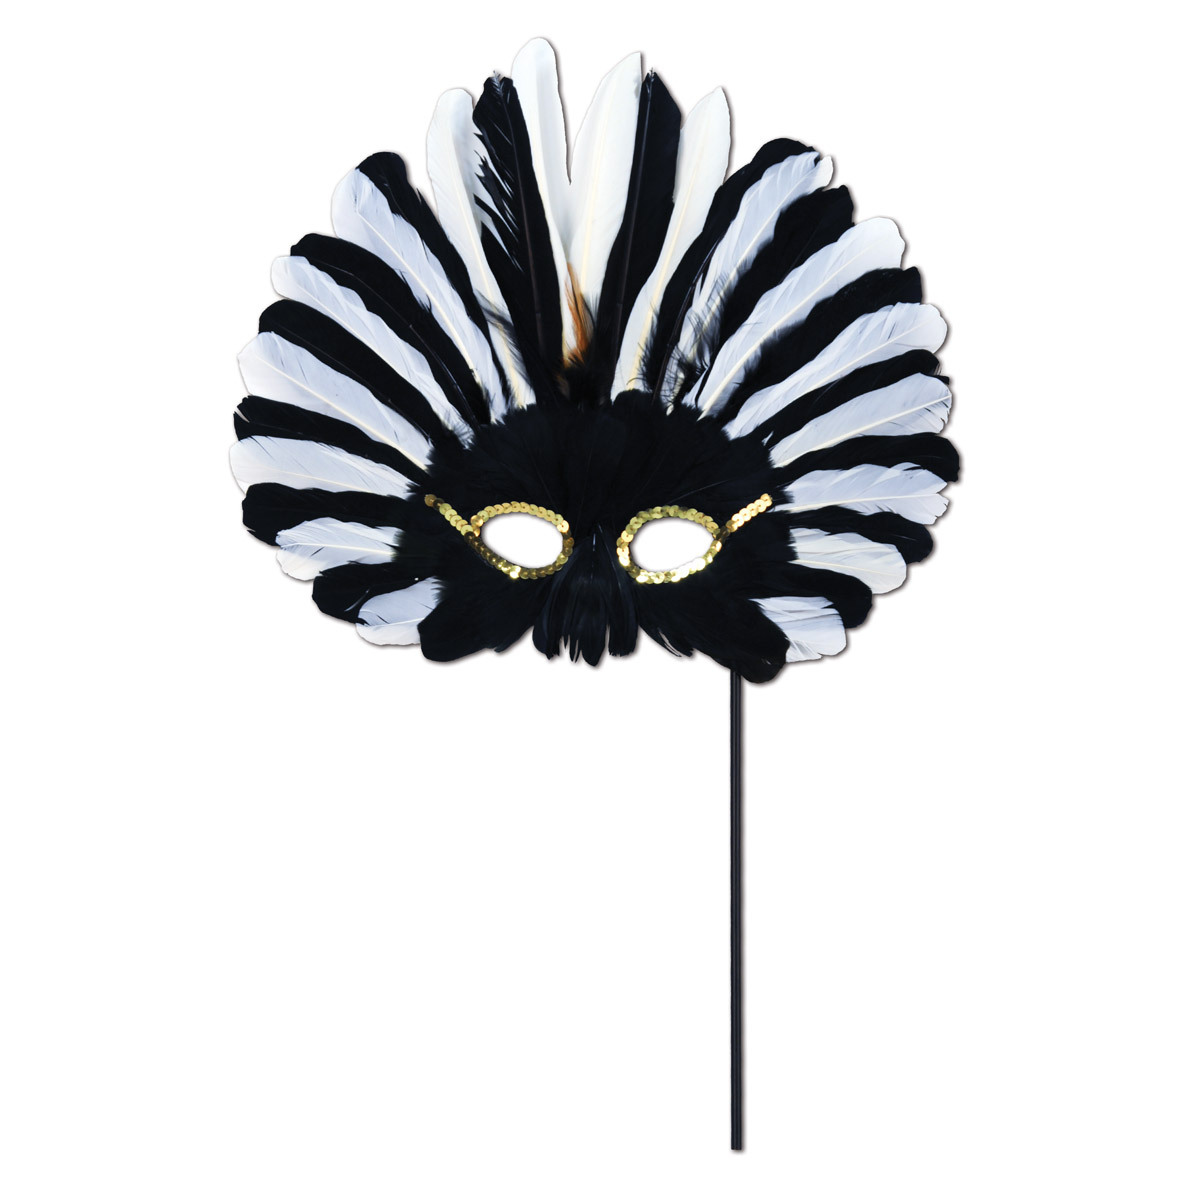 Black and white feathered mask on black stick.